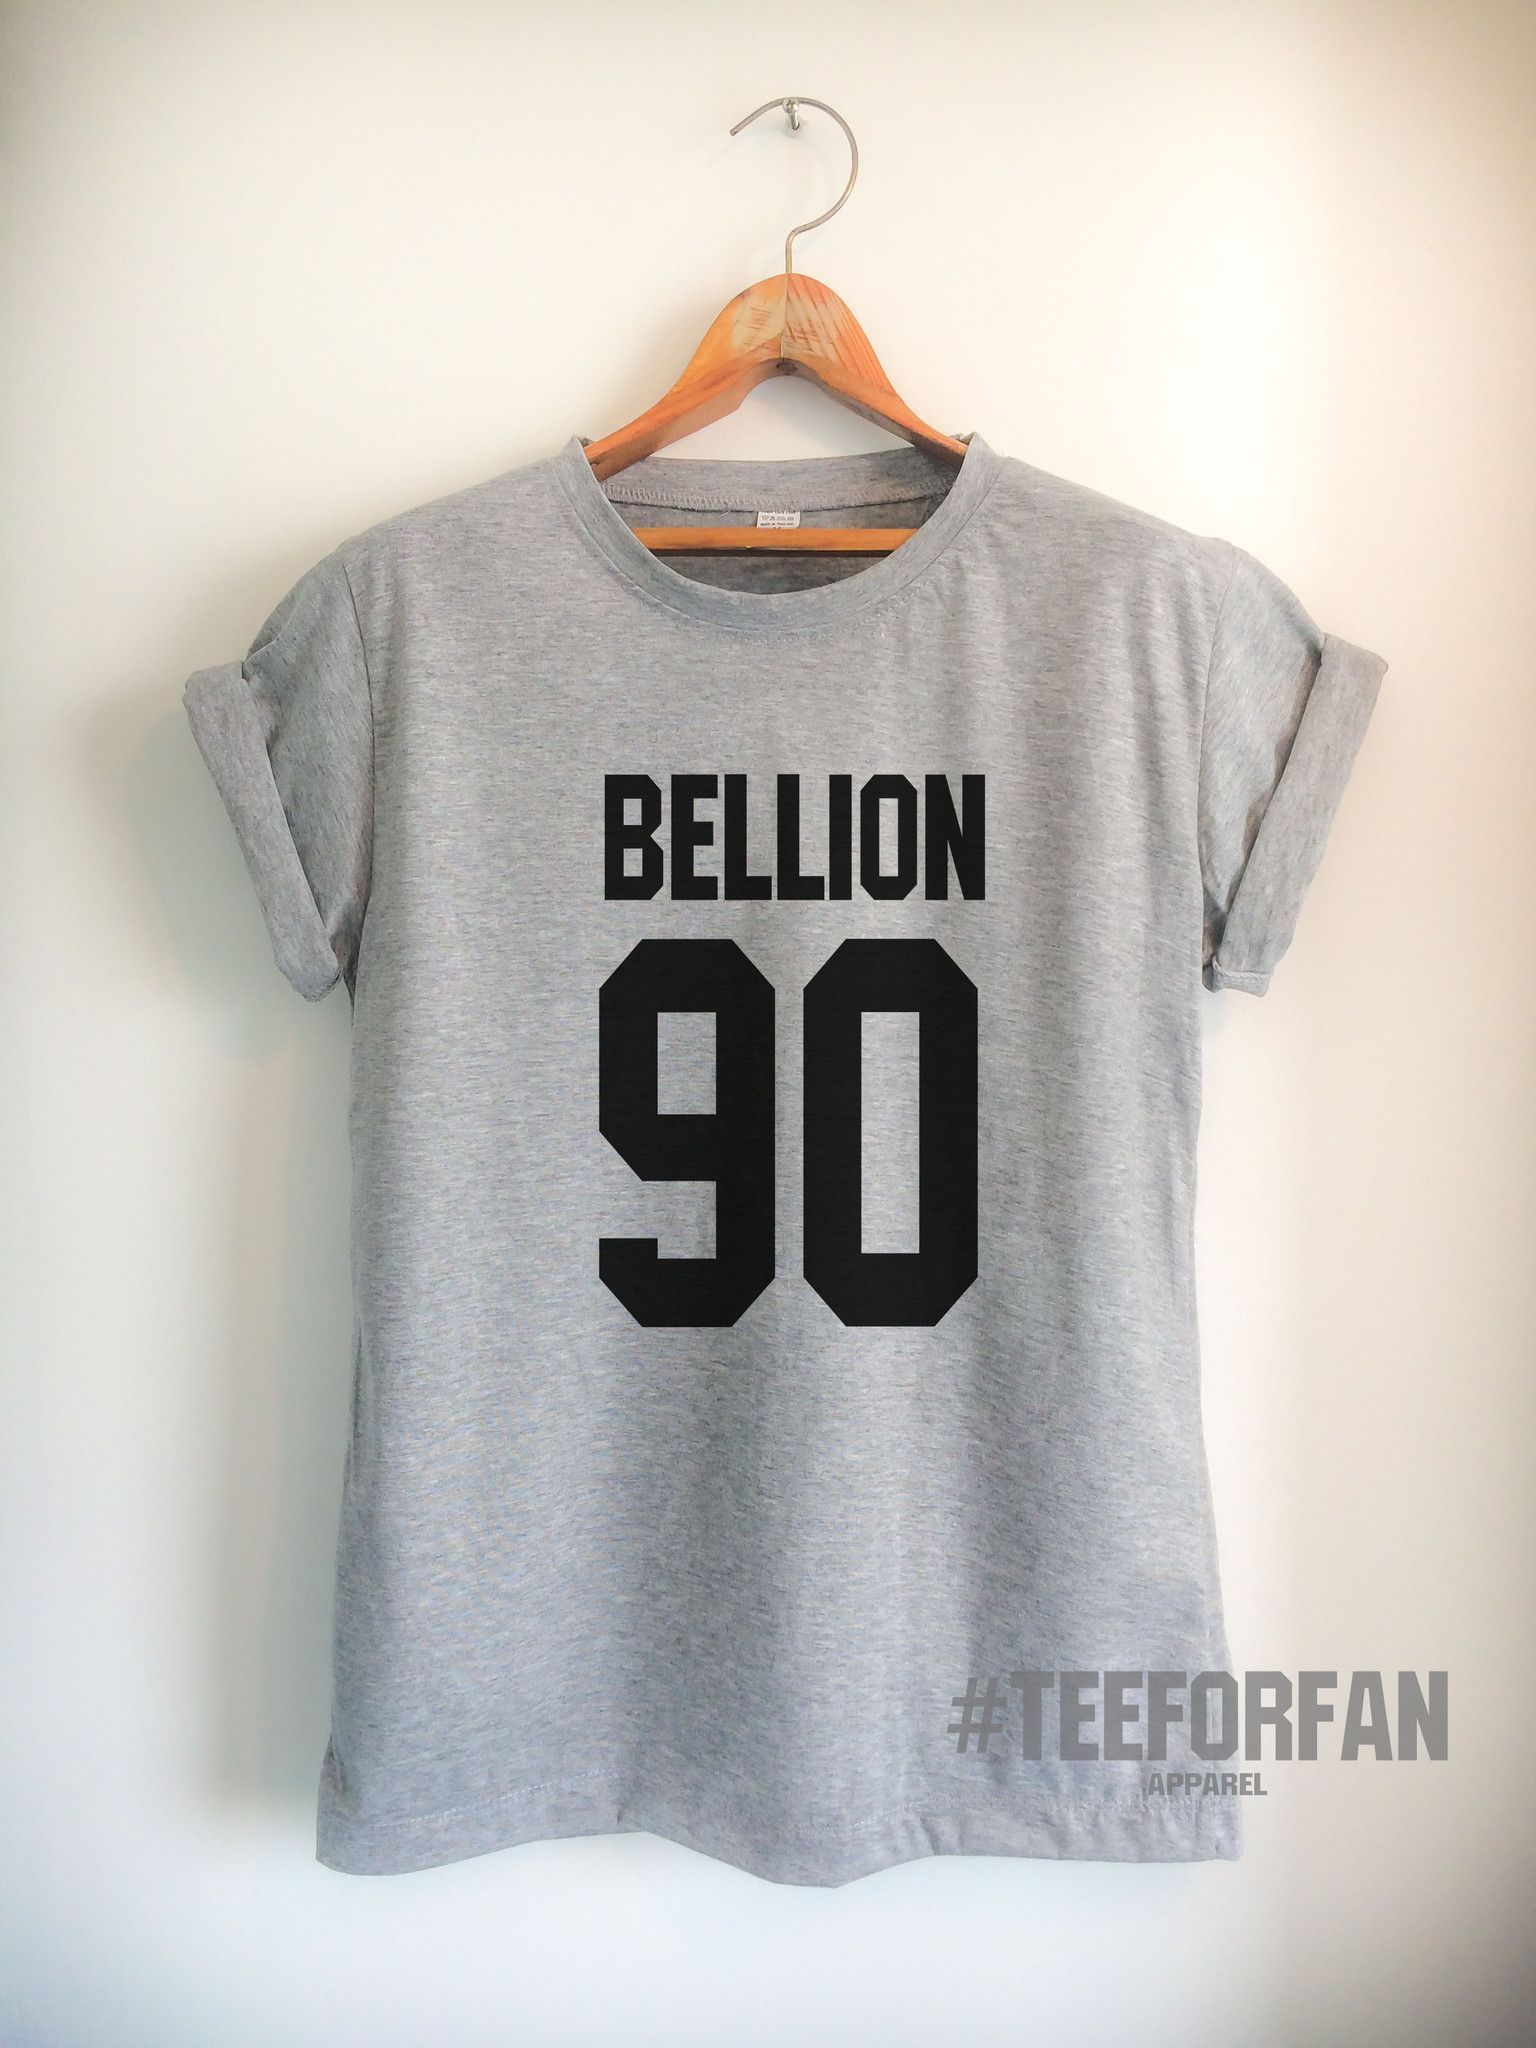 Bellion Shirt Bellion 90 T-Shirt Bellion Merch Clothing Top Tee ...